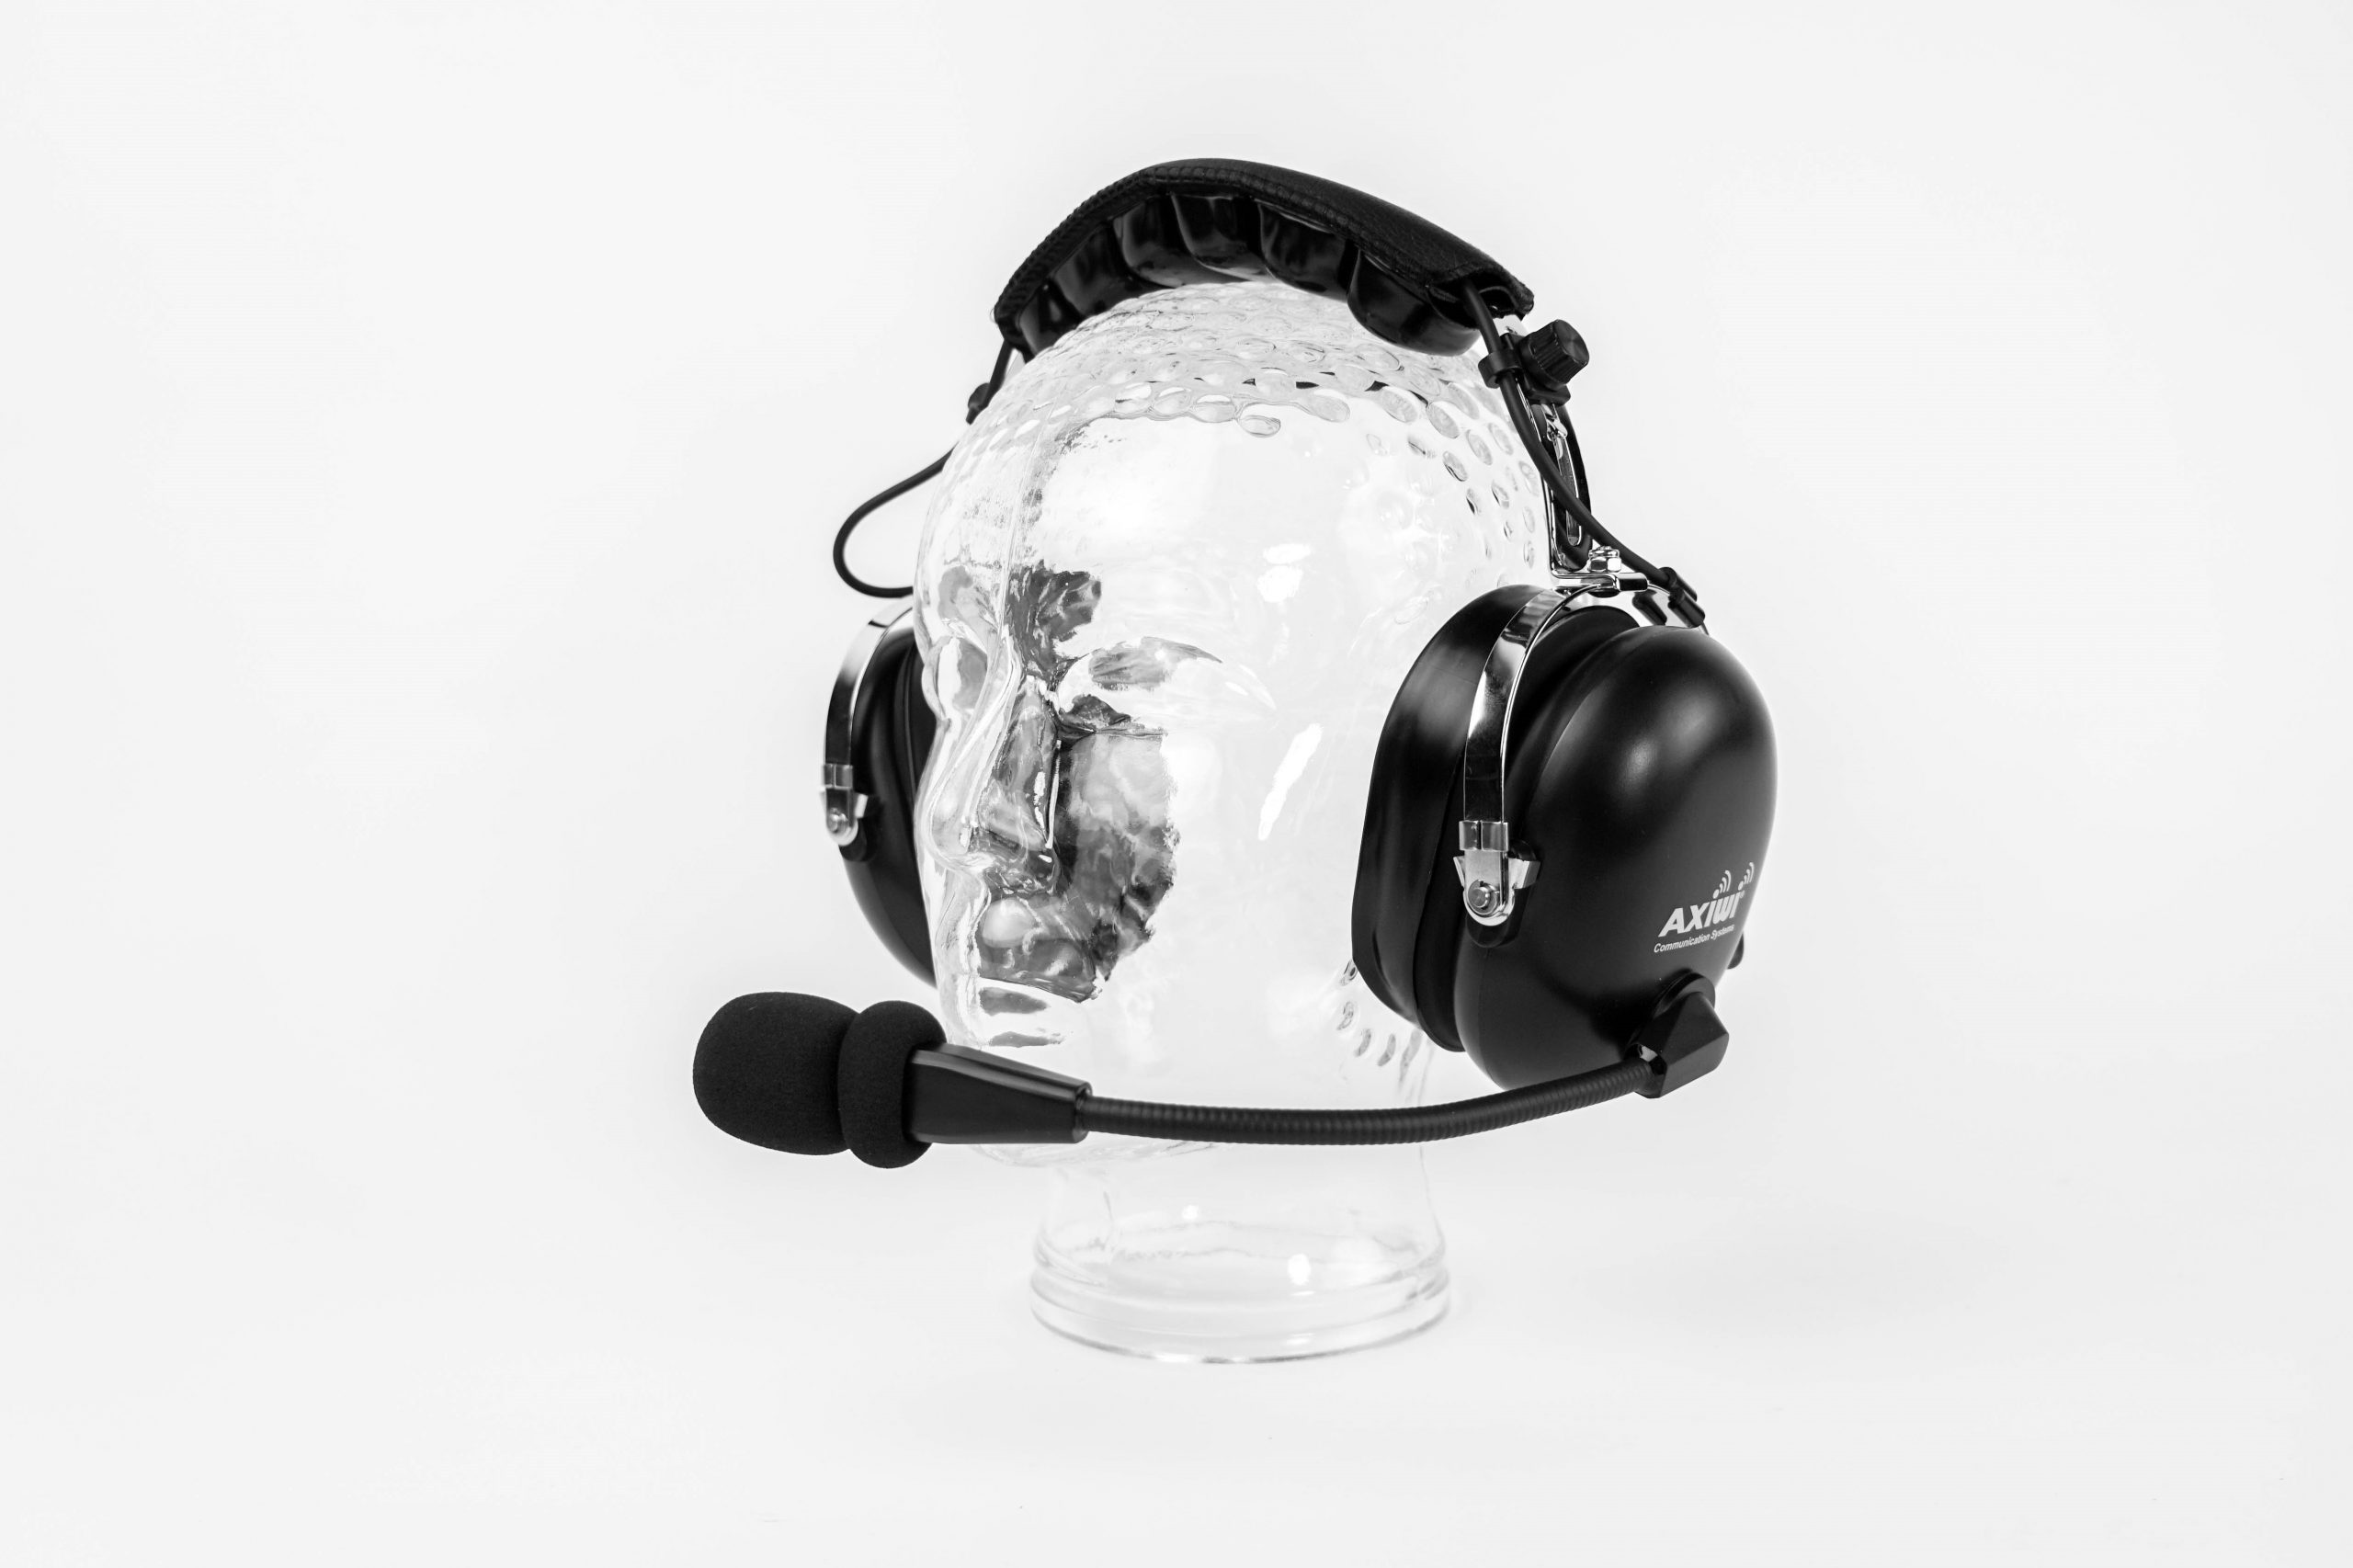 axiwi he-080 headset with noise reduction 29 dB